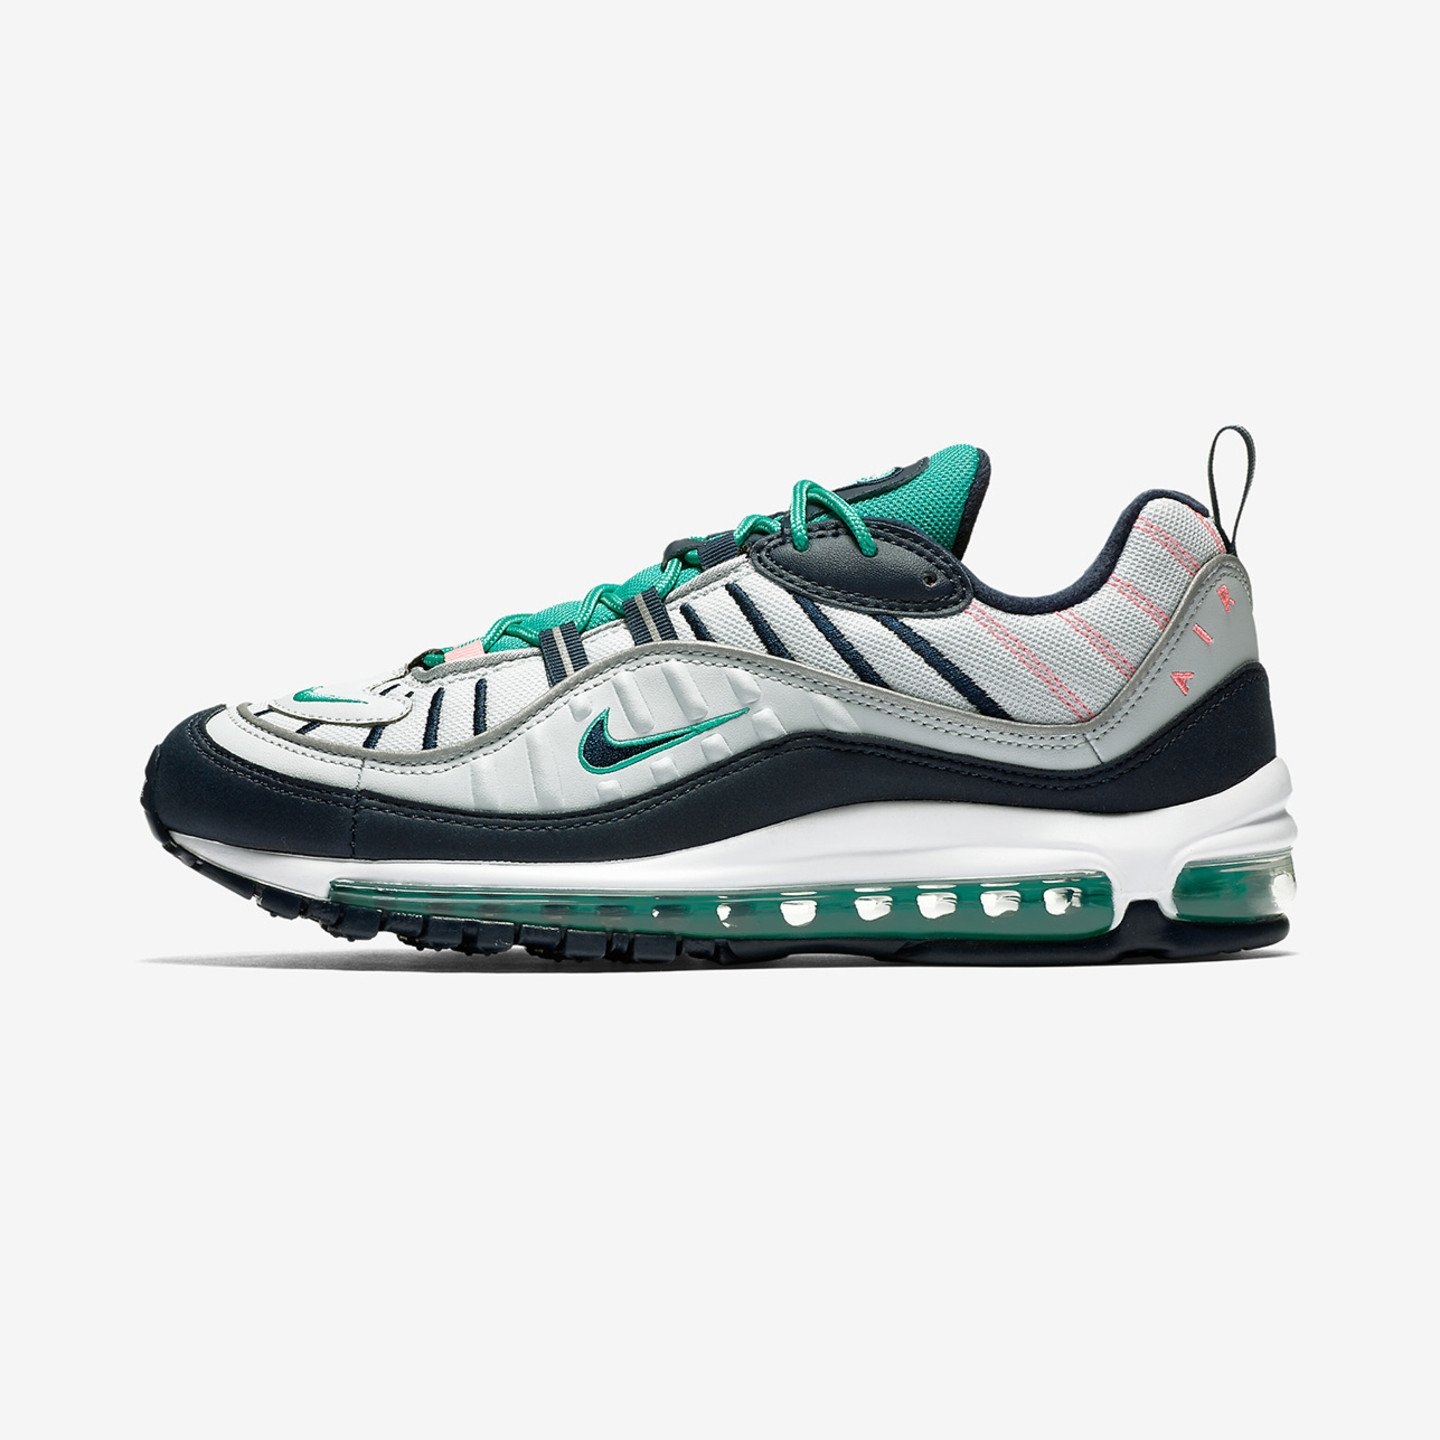 Nike Air Max 98 'South Beach' Purple Platinum / Obsidian / Kinetic Green 640744-005